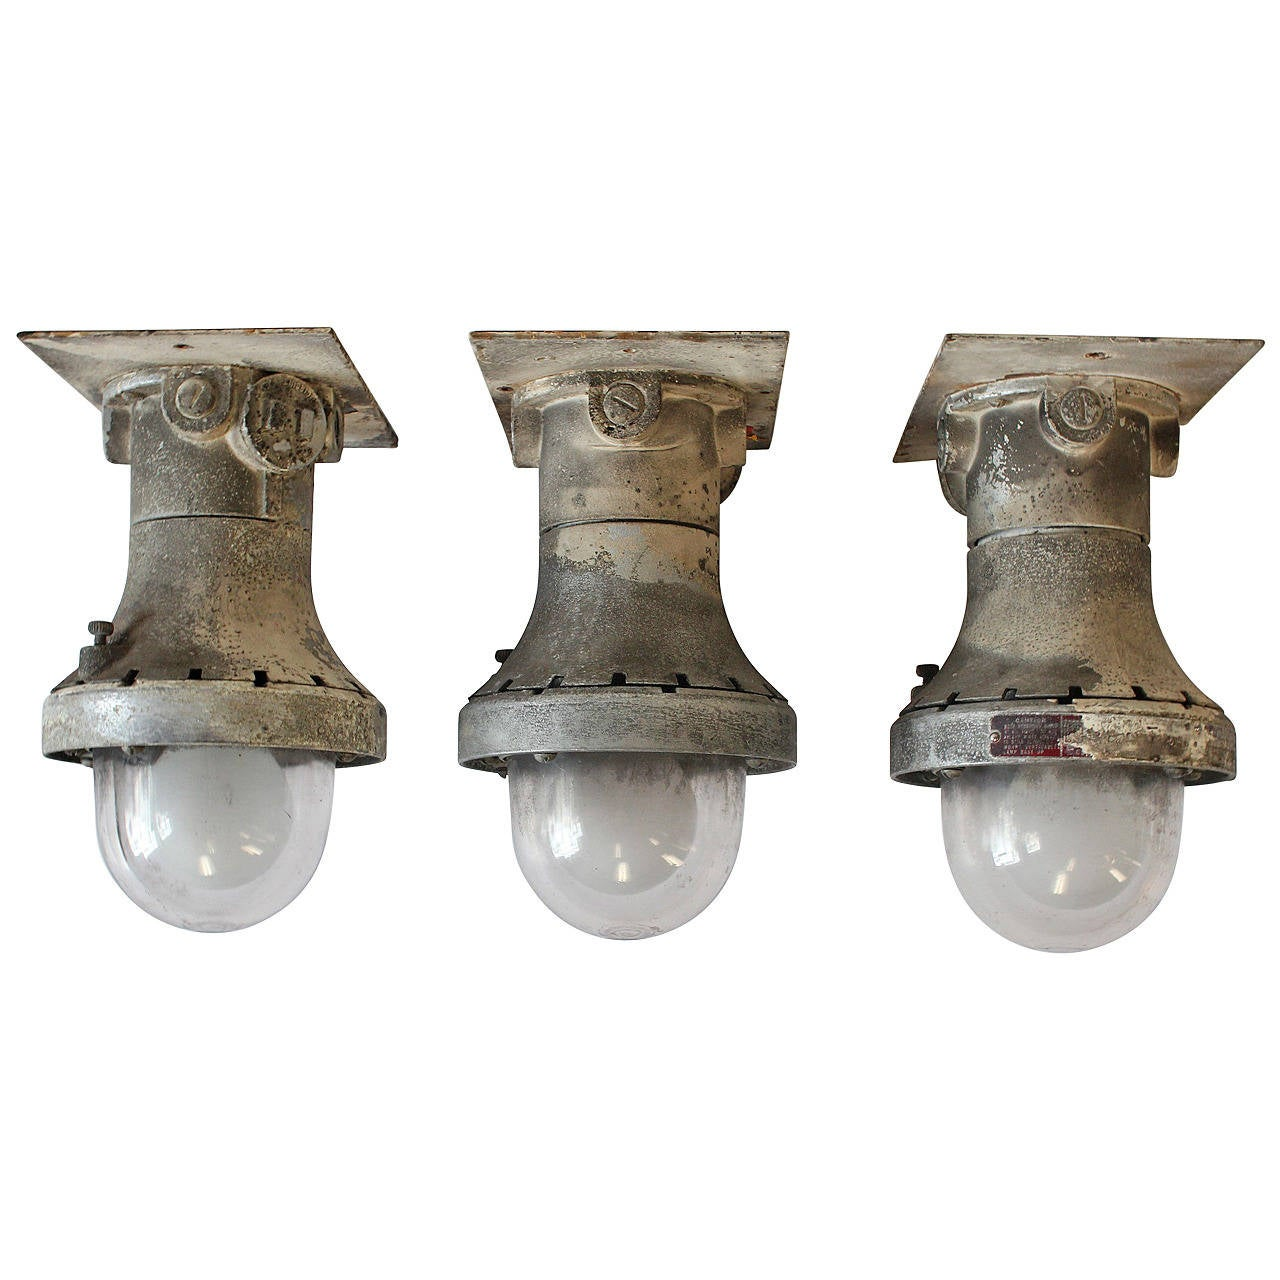 1930s Explosion Proof Industrial Flush Mount/Wall Sconces, Three Available at 1stdibs